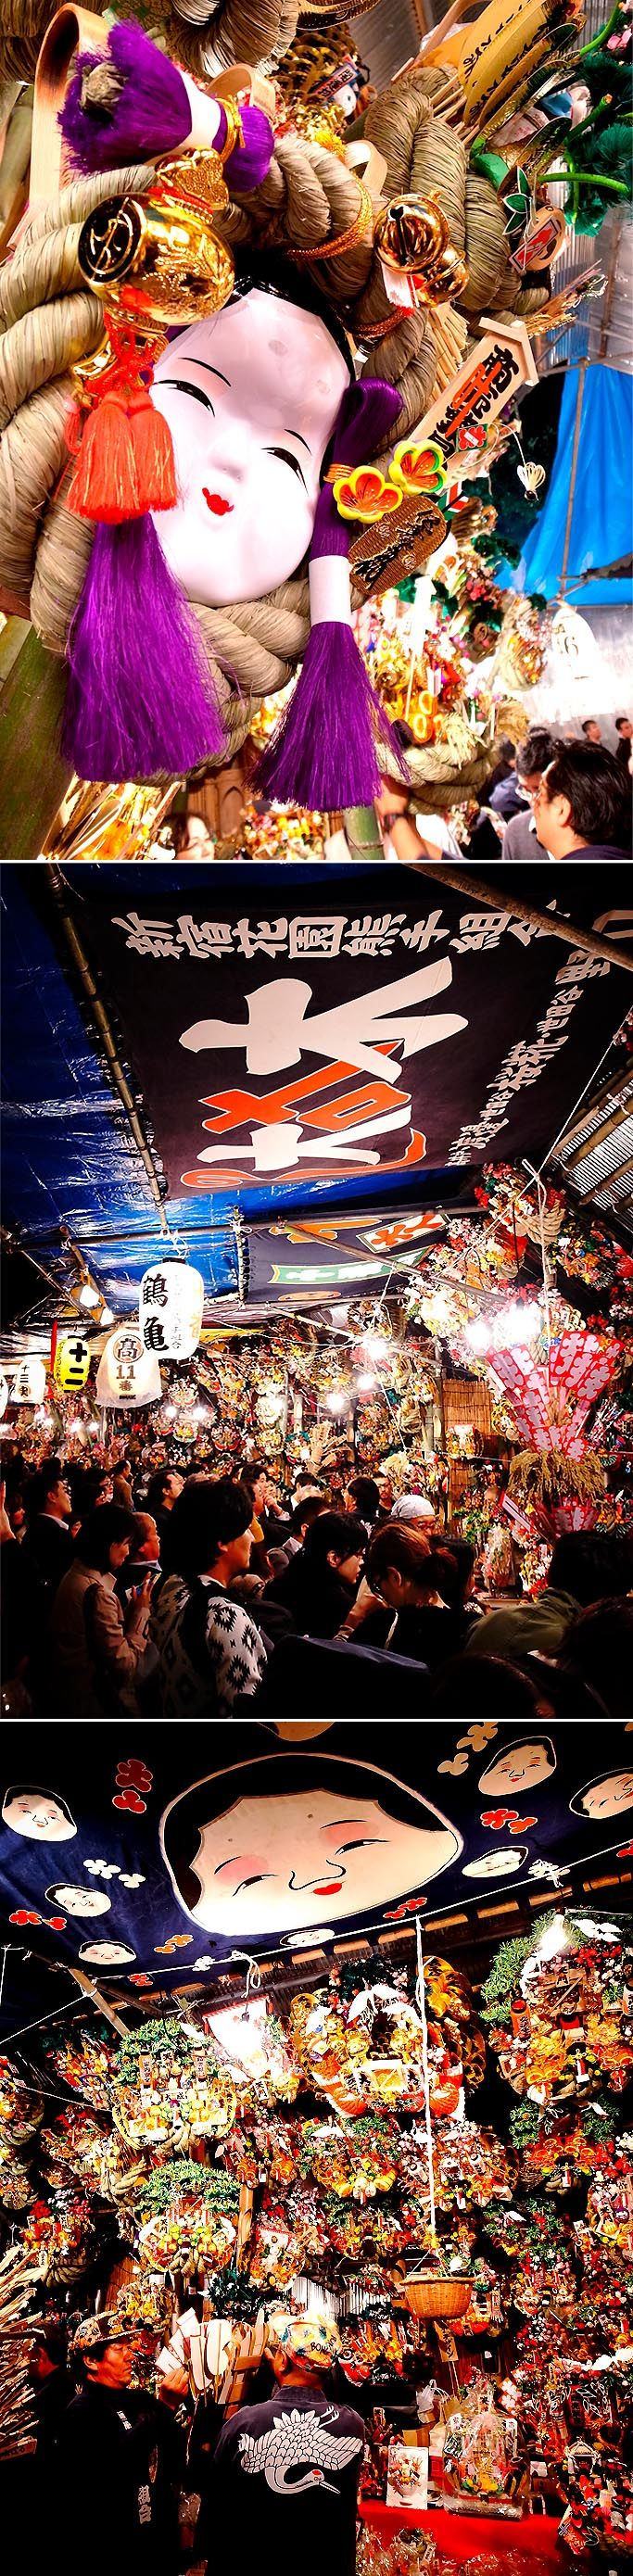 Tori no Ichi Fair (Tokyo's lucky festival) At the end of the year, I must go for this festival! / Shinjuku, Tokyo.